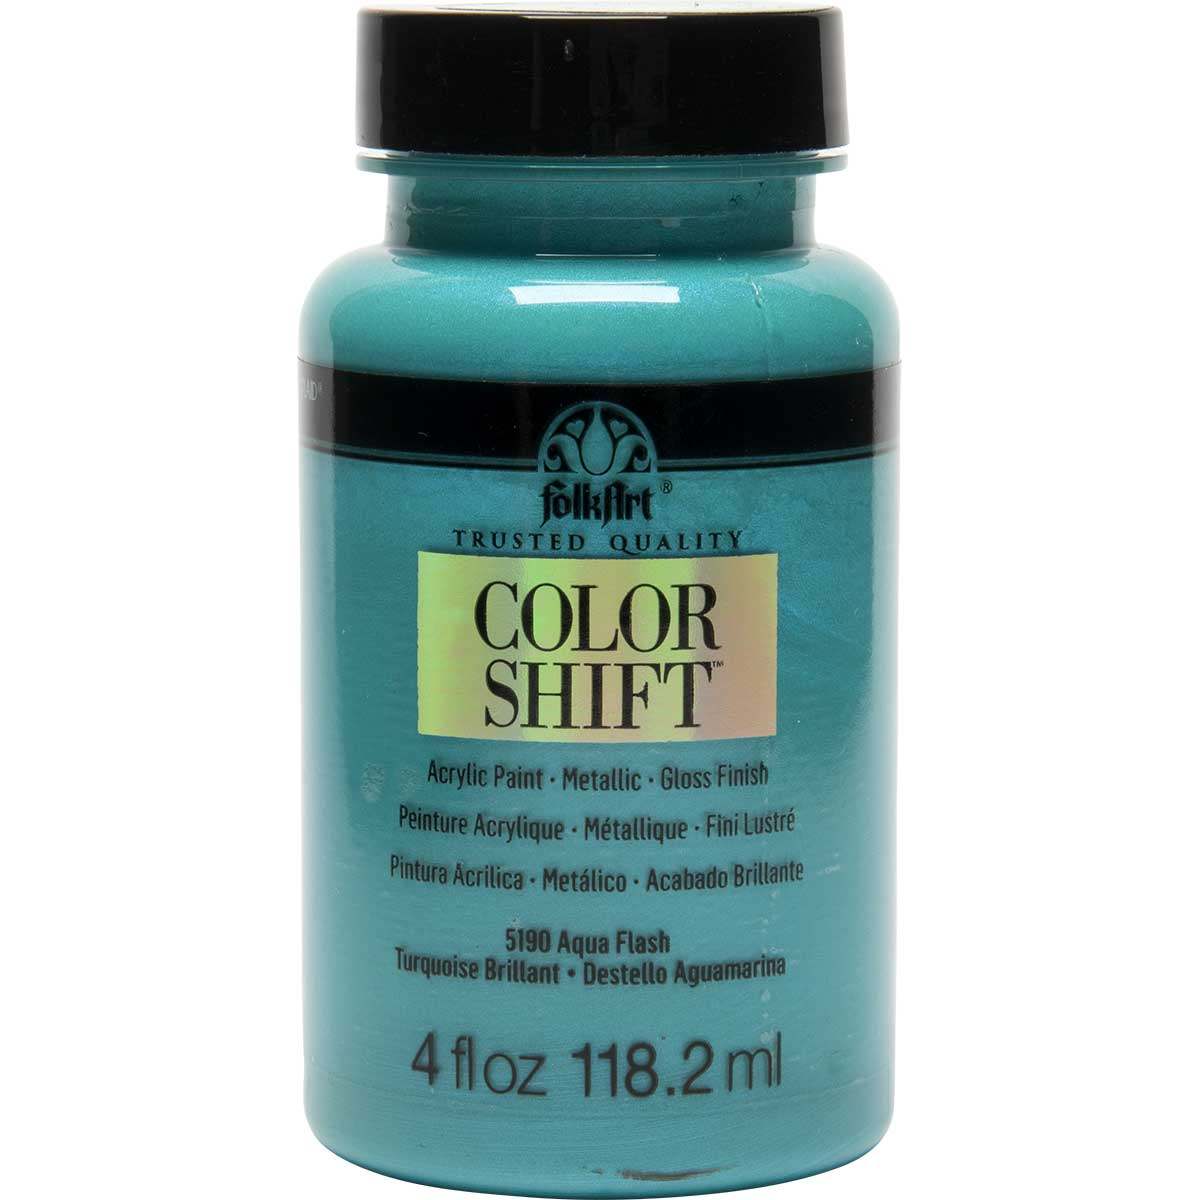 FolkArt ® Color Shift™ Acrylic Paint - Aqua Flash, 4 oz. - 5190